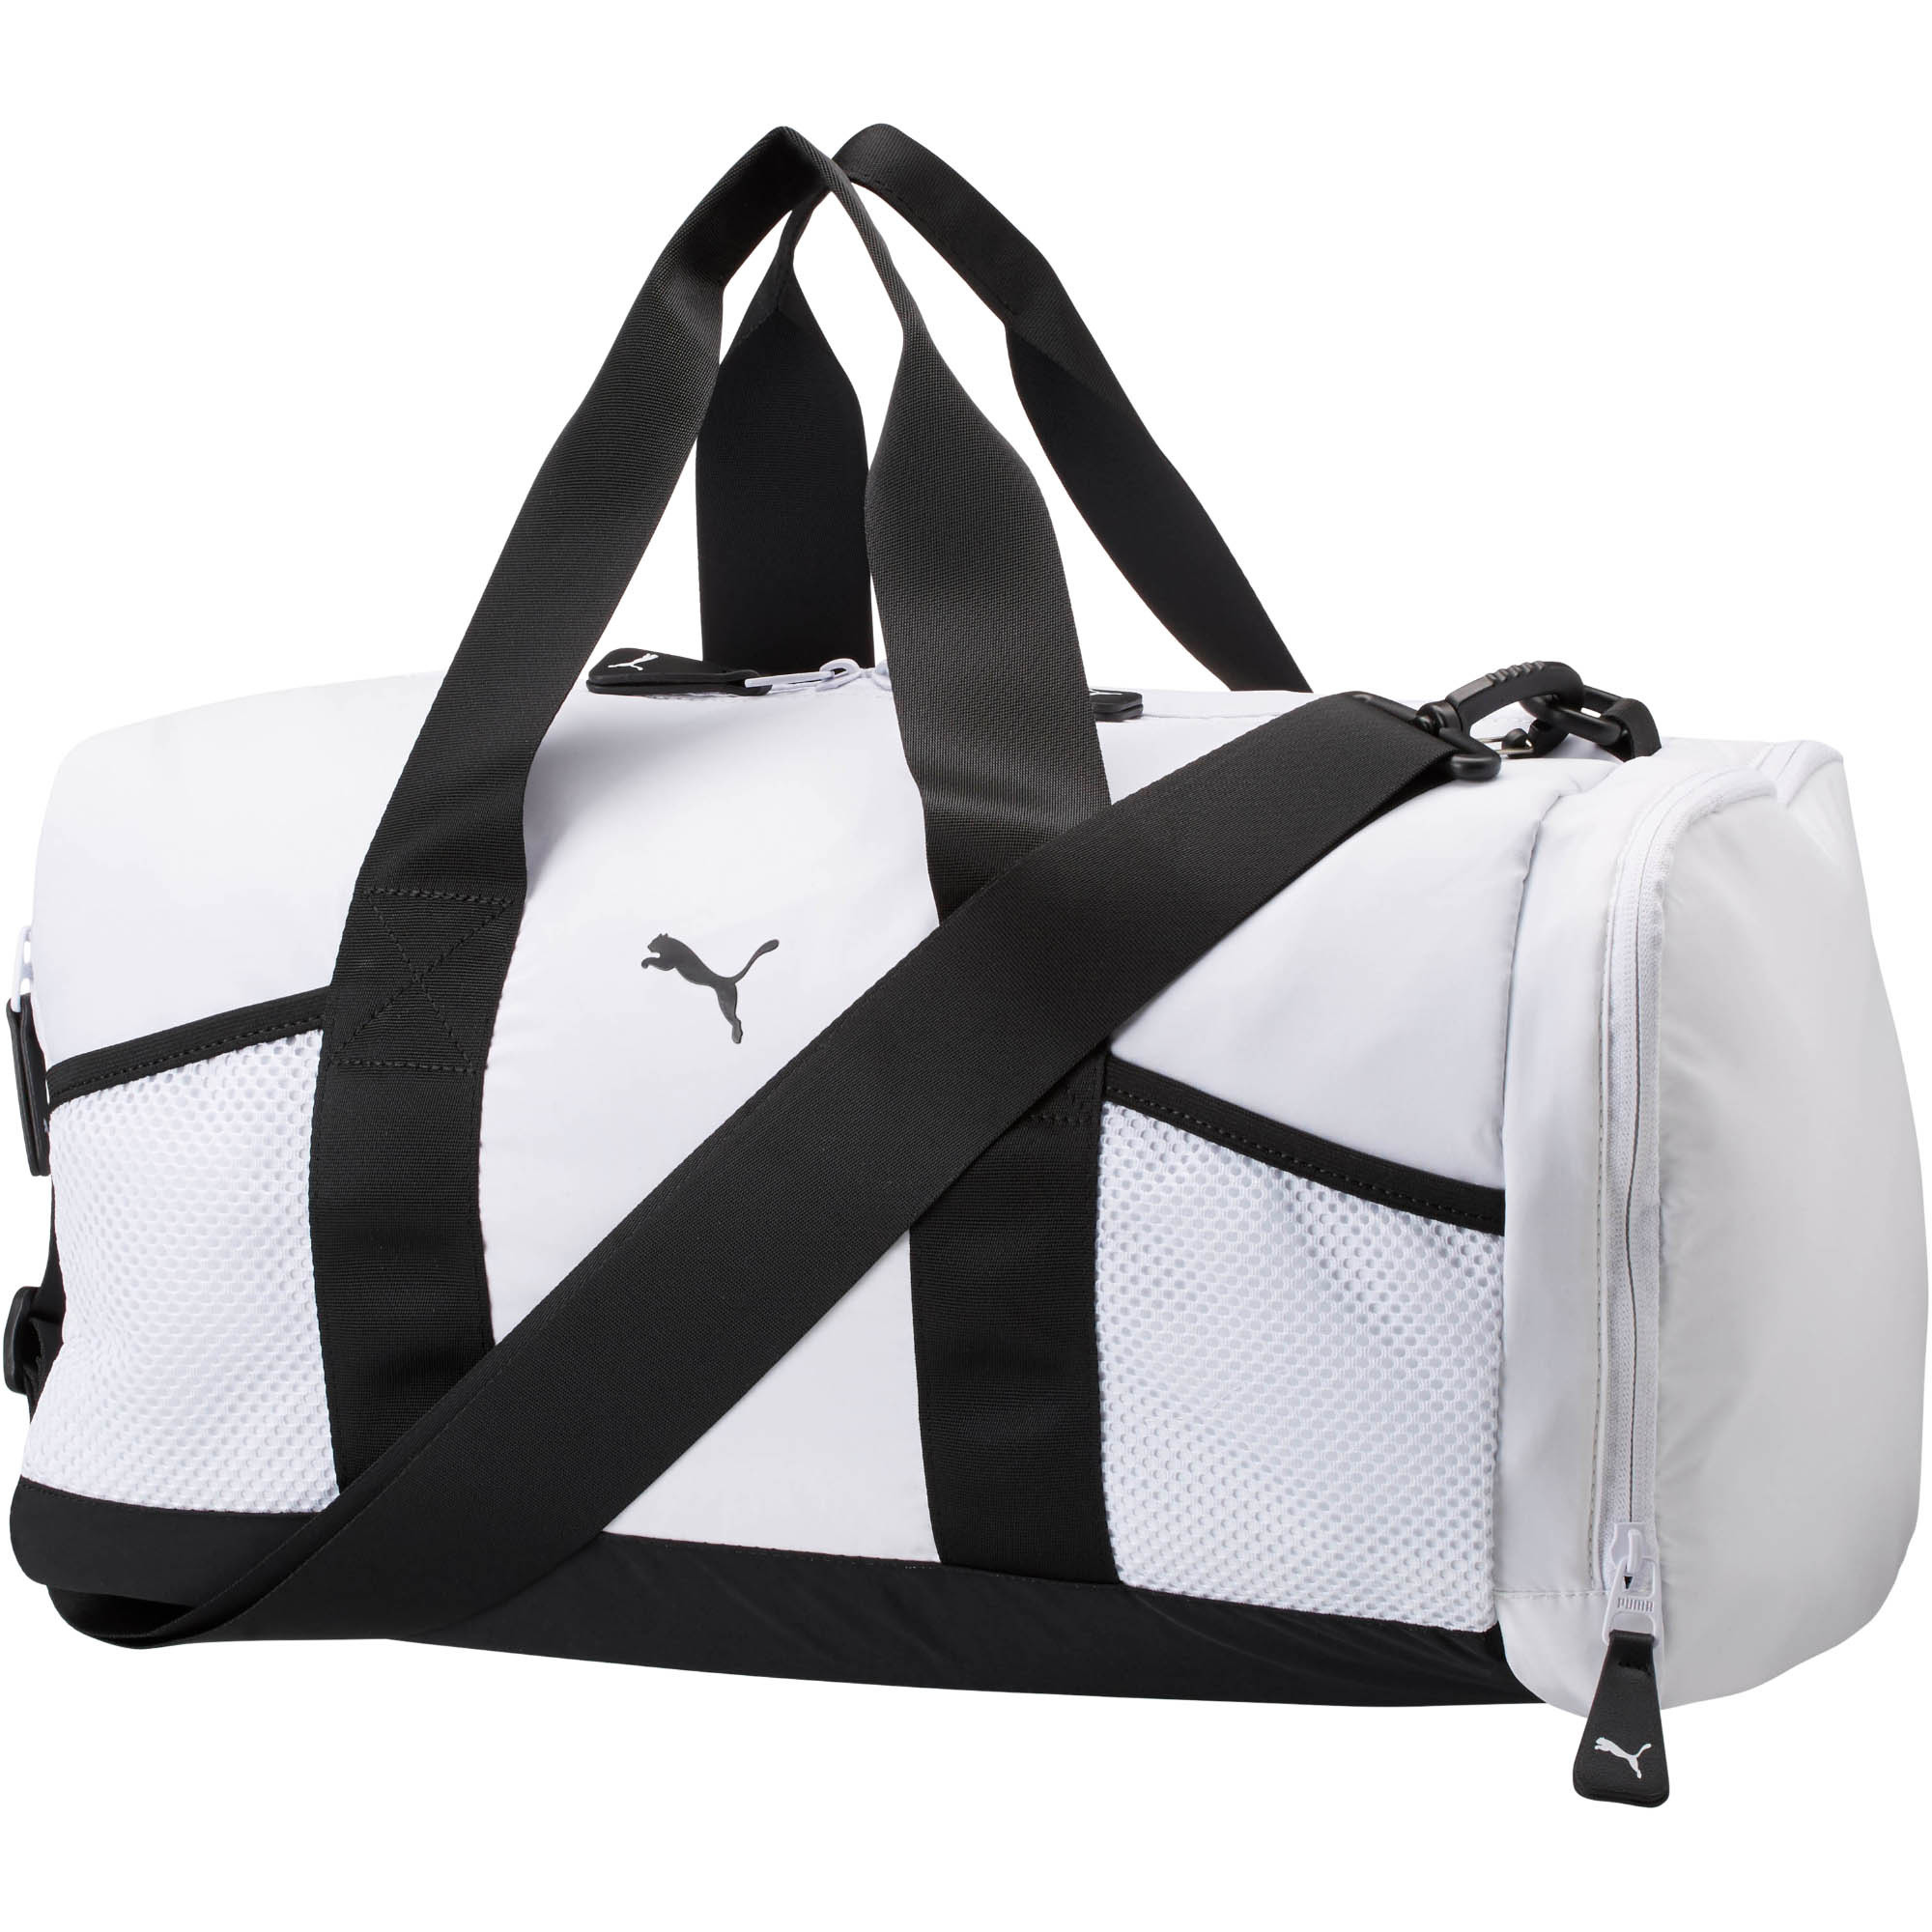 Details About Puma Upward Duffel Bag Women Duffle Bags